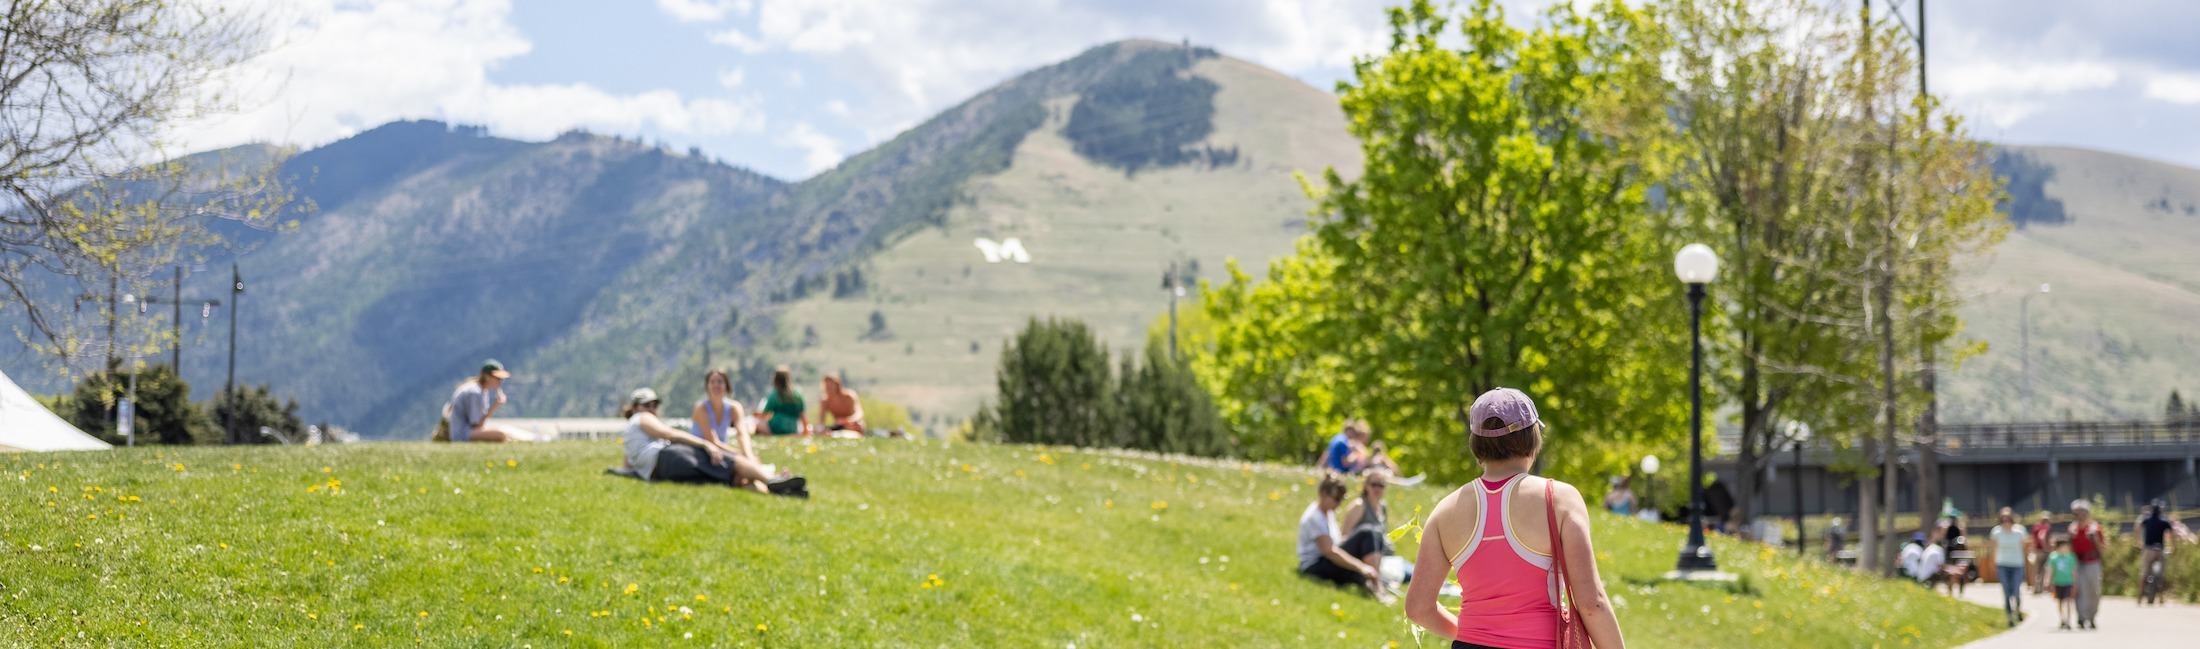 Your Monthly Guide to Missoula: June 2021